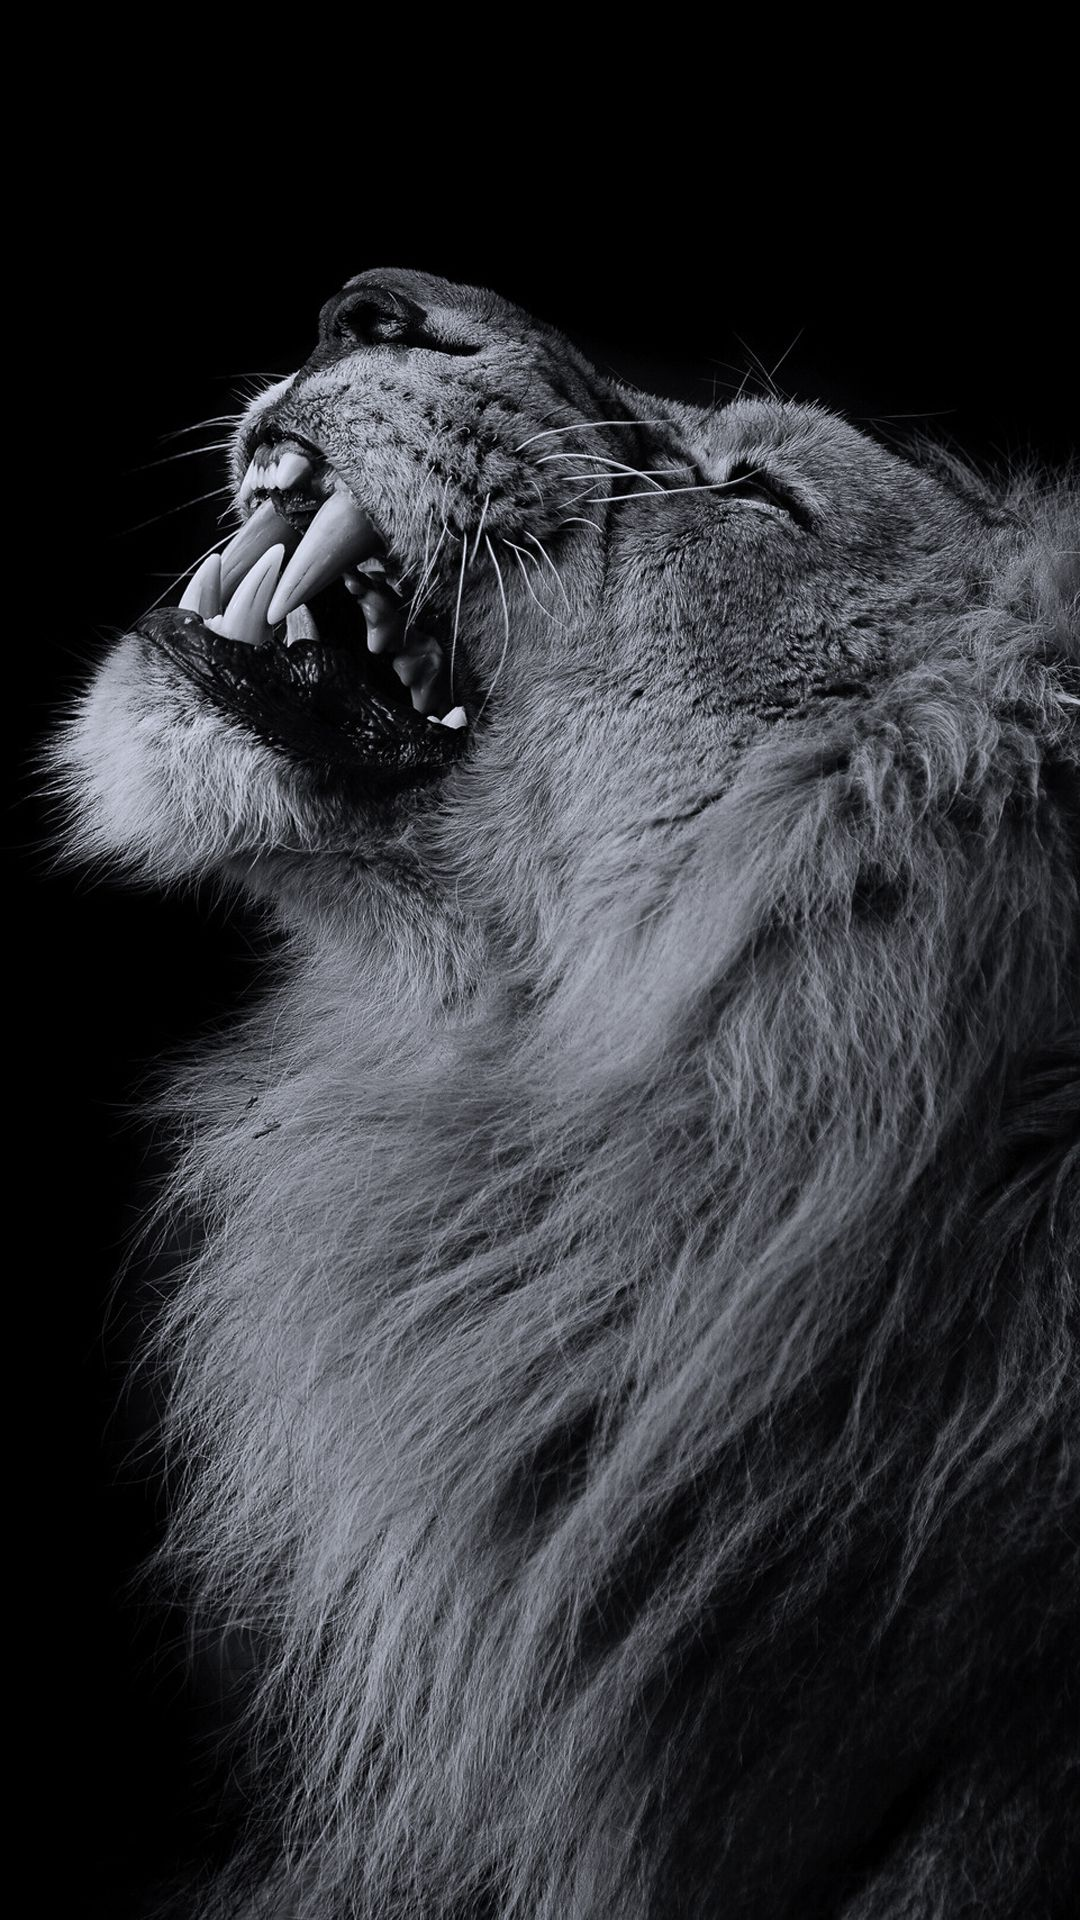 Black Lion Wallpaper 1080p Hupages Download Iphone Wallpapers Lion Images Lion Photography Wild Animal Wallpaper